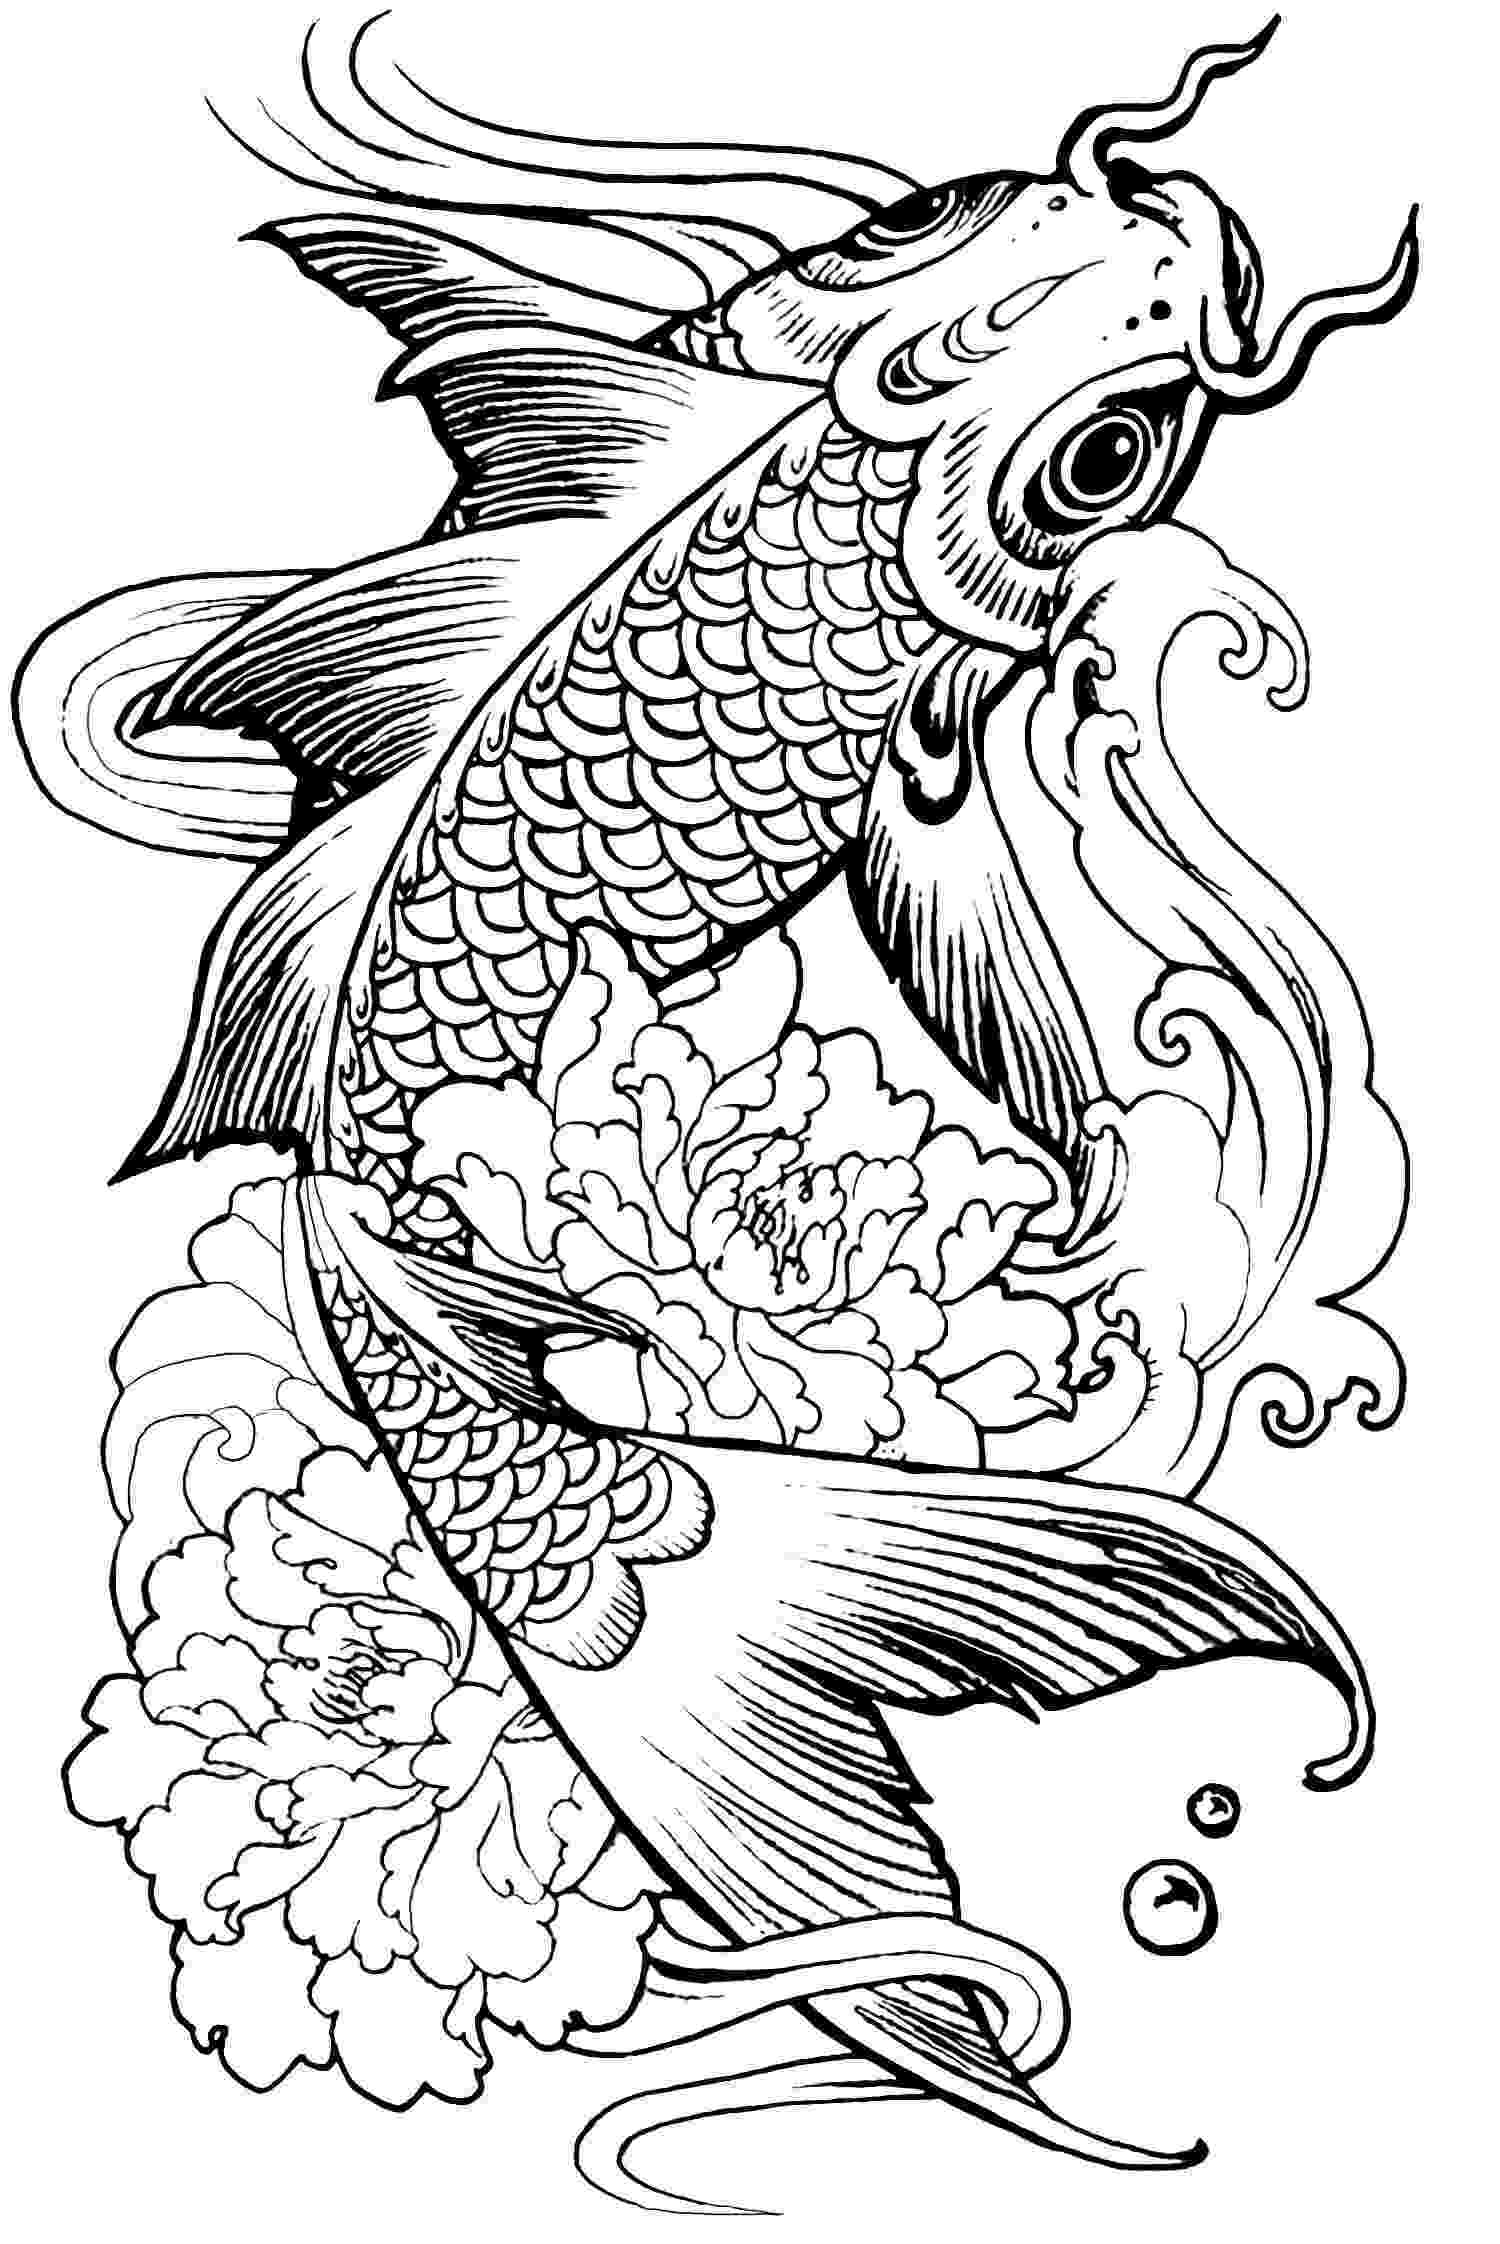 hard animal coloring pages hard animal pattern coloring pages getcoloringpagescom pages hard coloring animal